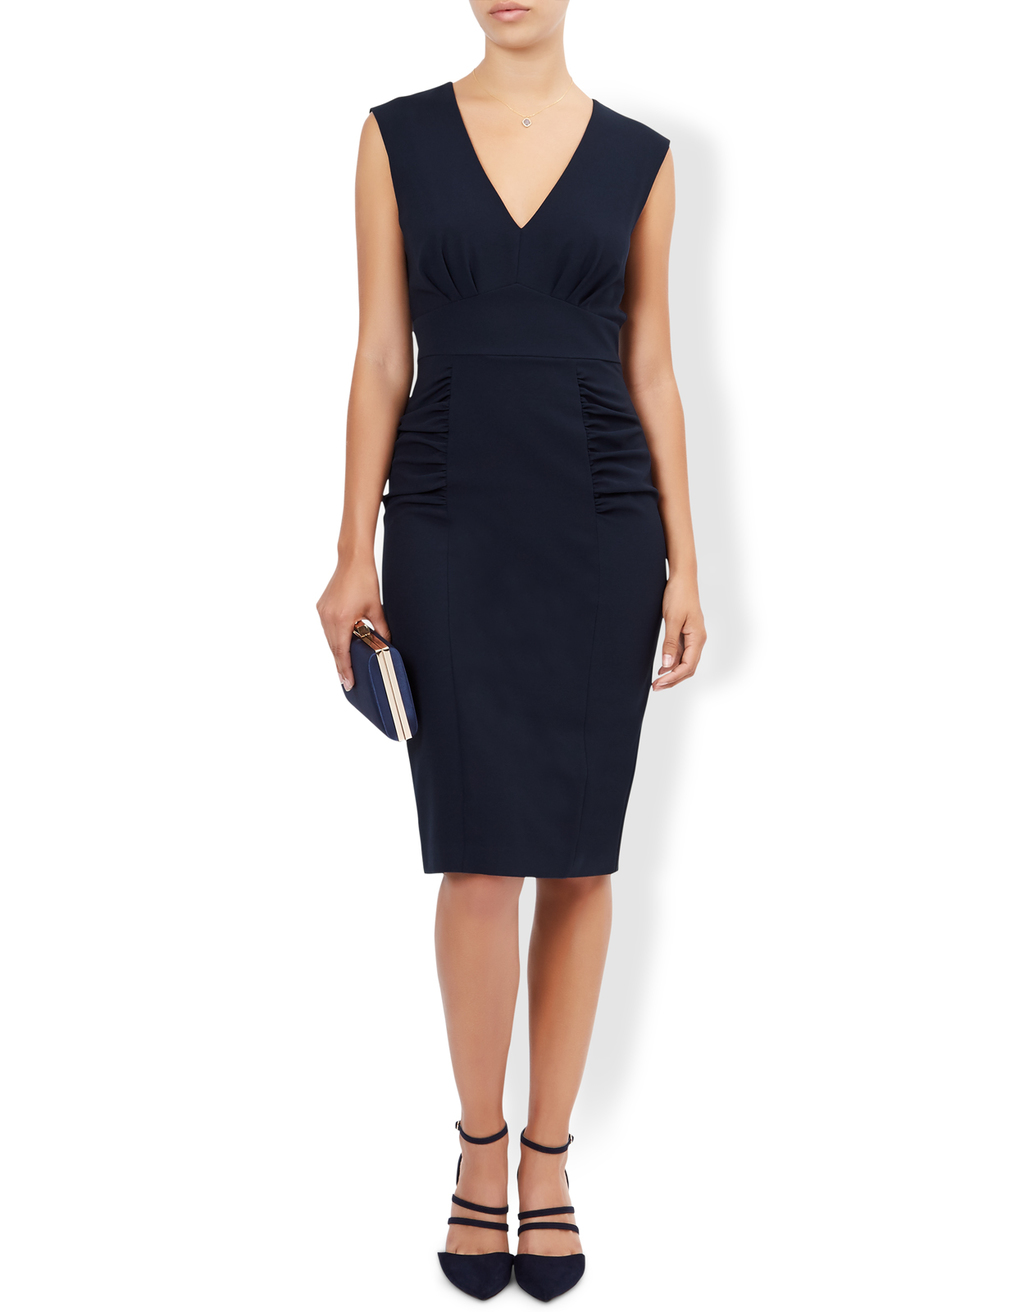 Sasha Plain Dress - neckline: v-neck; fit: tight; pattern: plain; sleeve style: sleeveless; style: bodycon; predominant colour: black; occasions: evening; length: on the knee; fibres: polyester/polyamide - stretch; sleeve length: sleeveless; texture group: jersey - clingy; pattern type: fabric; season: a/w 2016; wardrobe: event